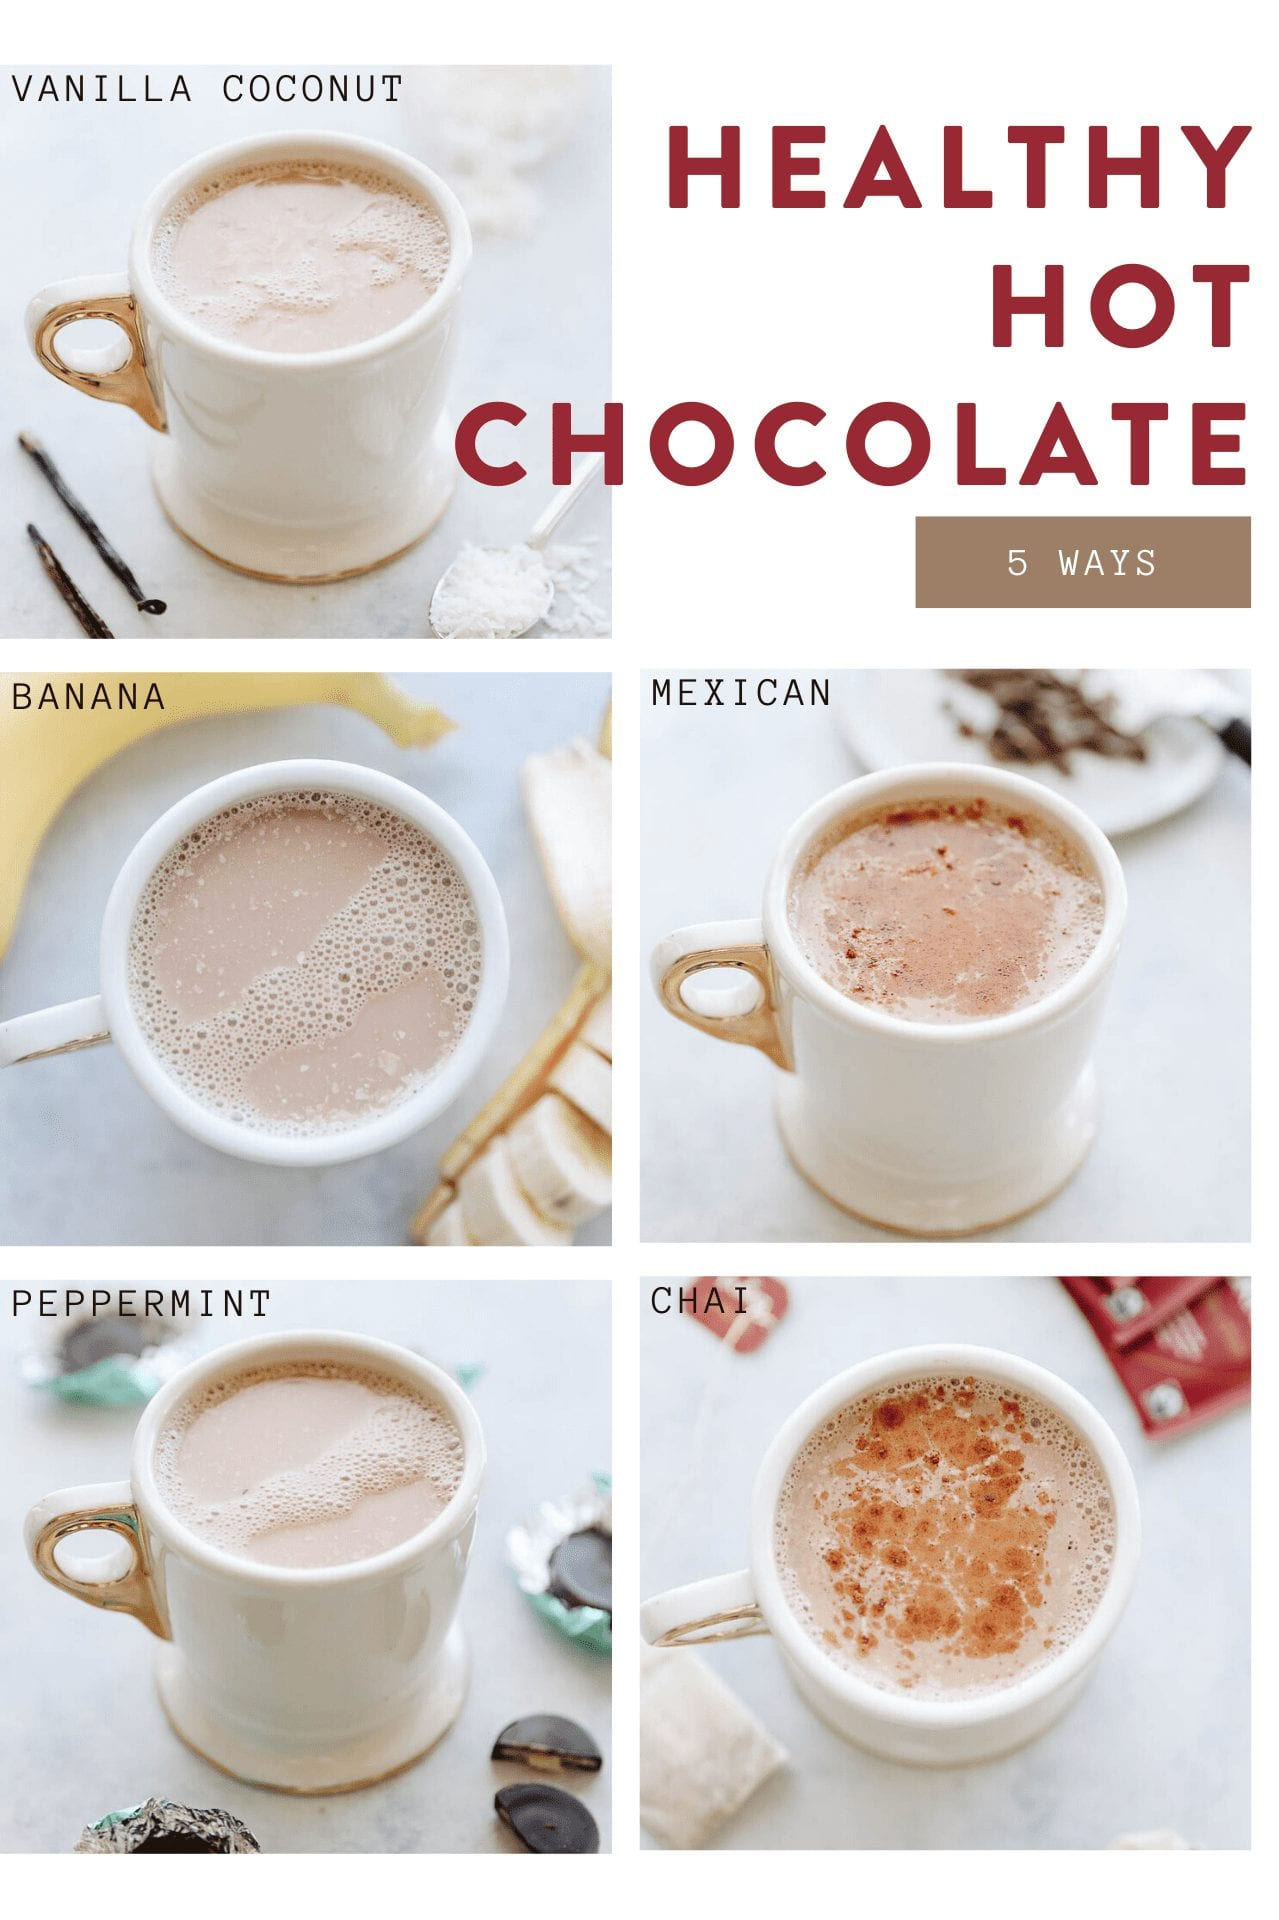 Looking for a healthy hot chocolate recipe? Look no further than these 5 healthy versions including banana hot chocolate, peppermint hot chocolate, chai hot chocolate and more! All made with healthy, nutritious ingredients that you probably already have in your pantry!